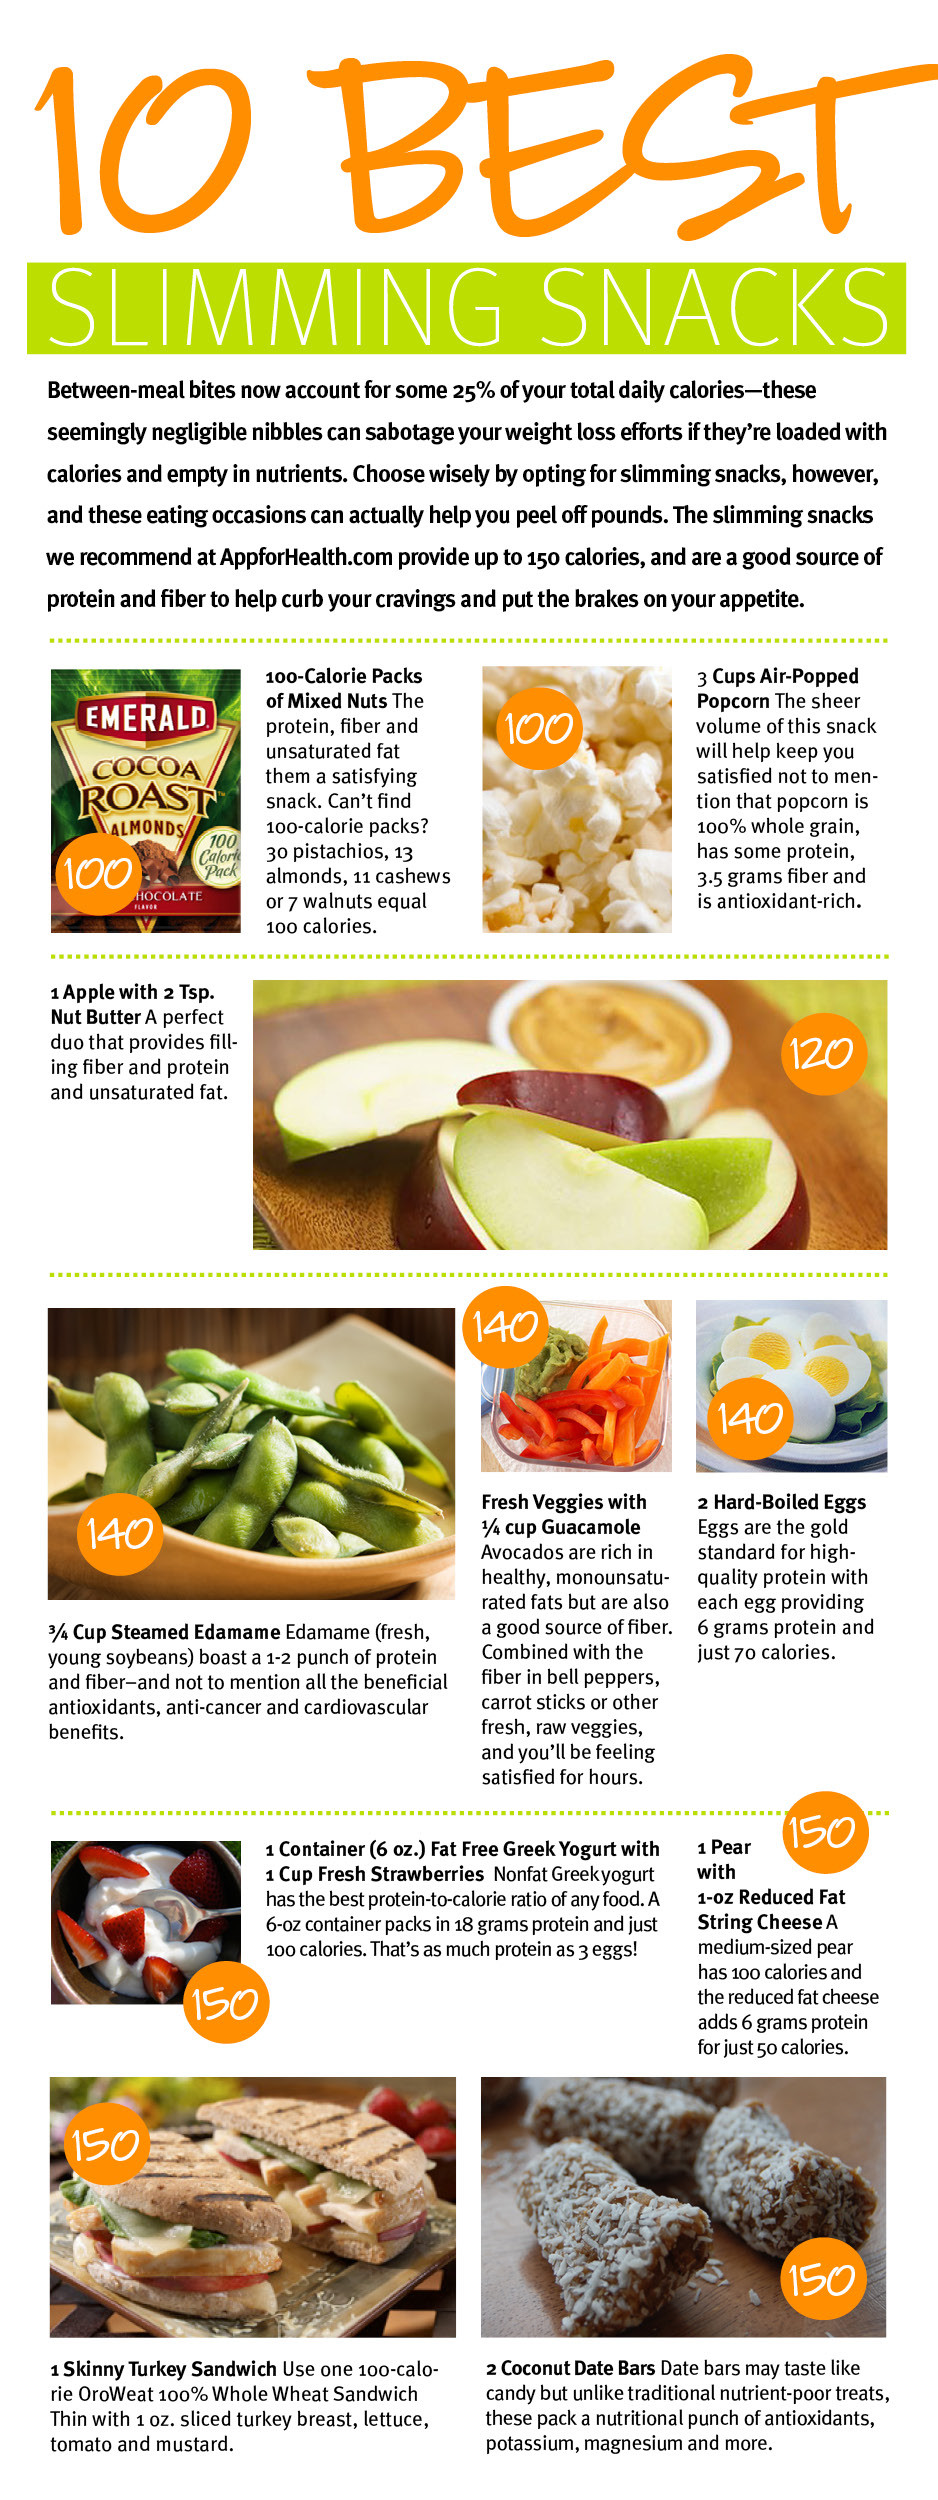 Healthy Snacks With Calories  10 Healthy Snack Ideas all under 150 calories